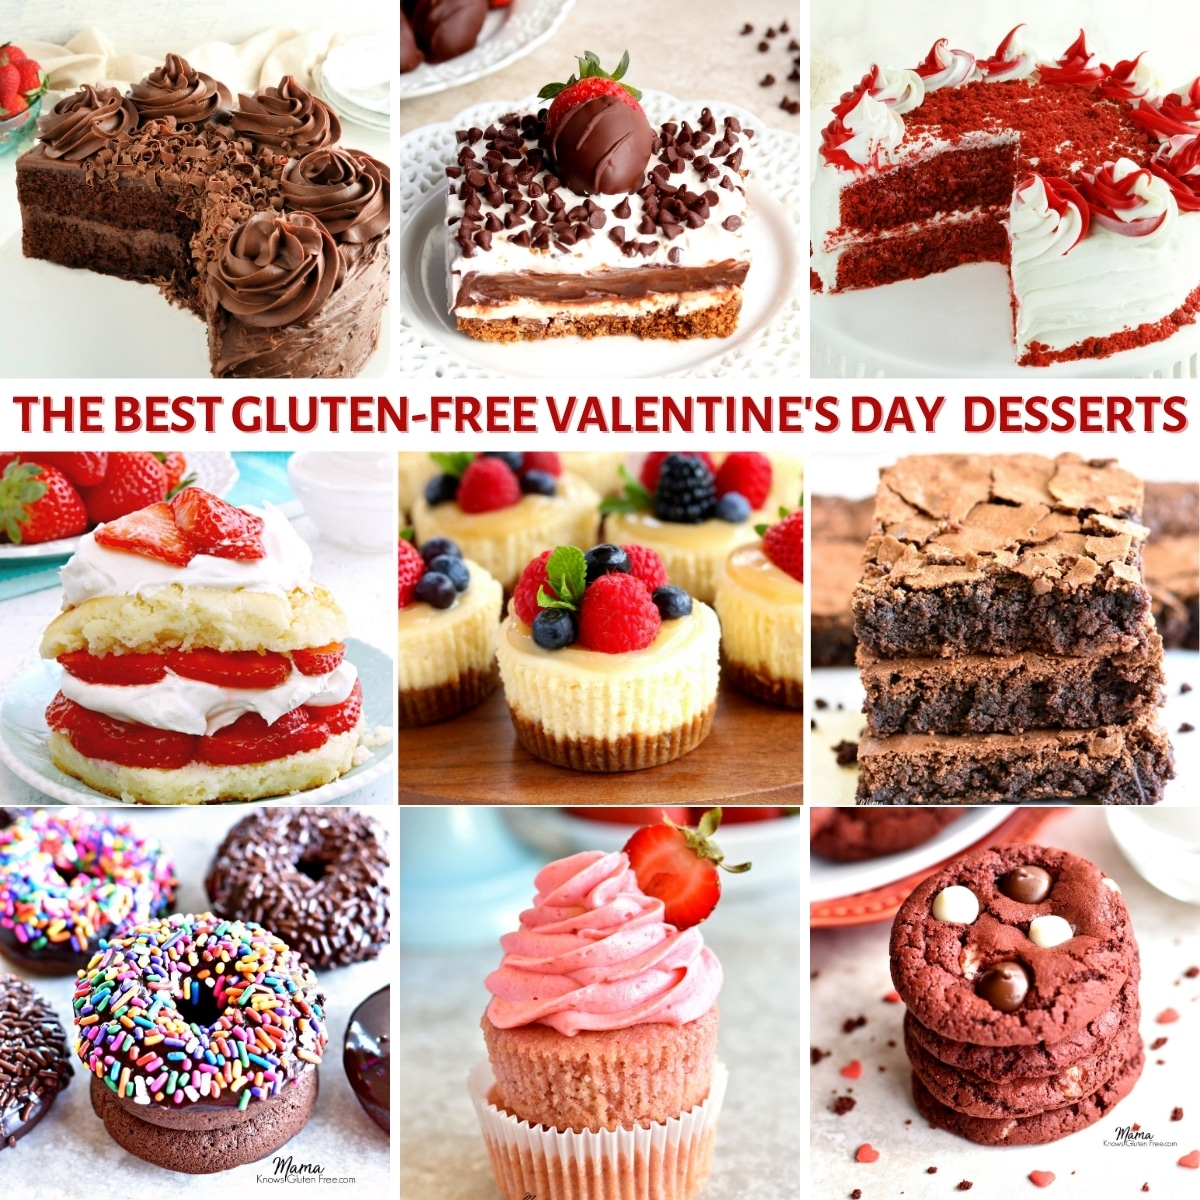 photo collage of gluten free dessert recipes for Valentine's Day